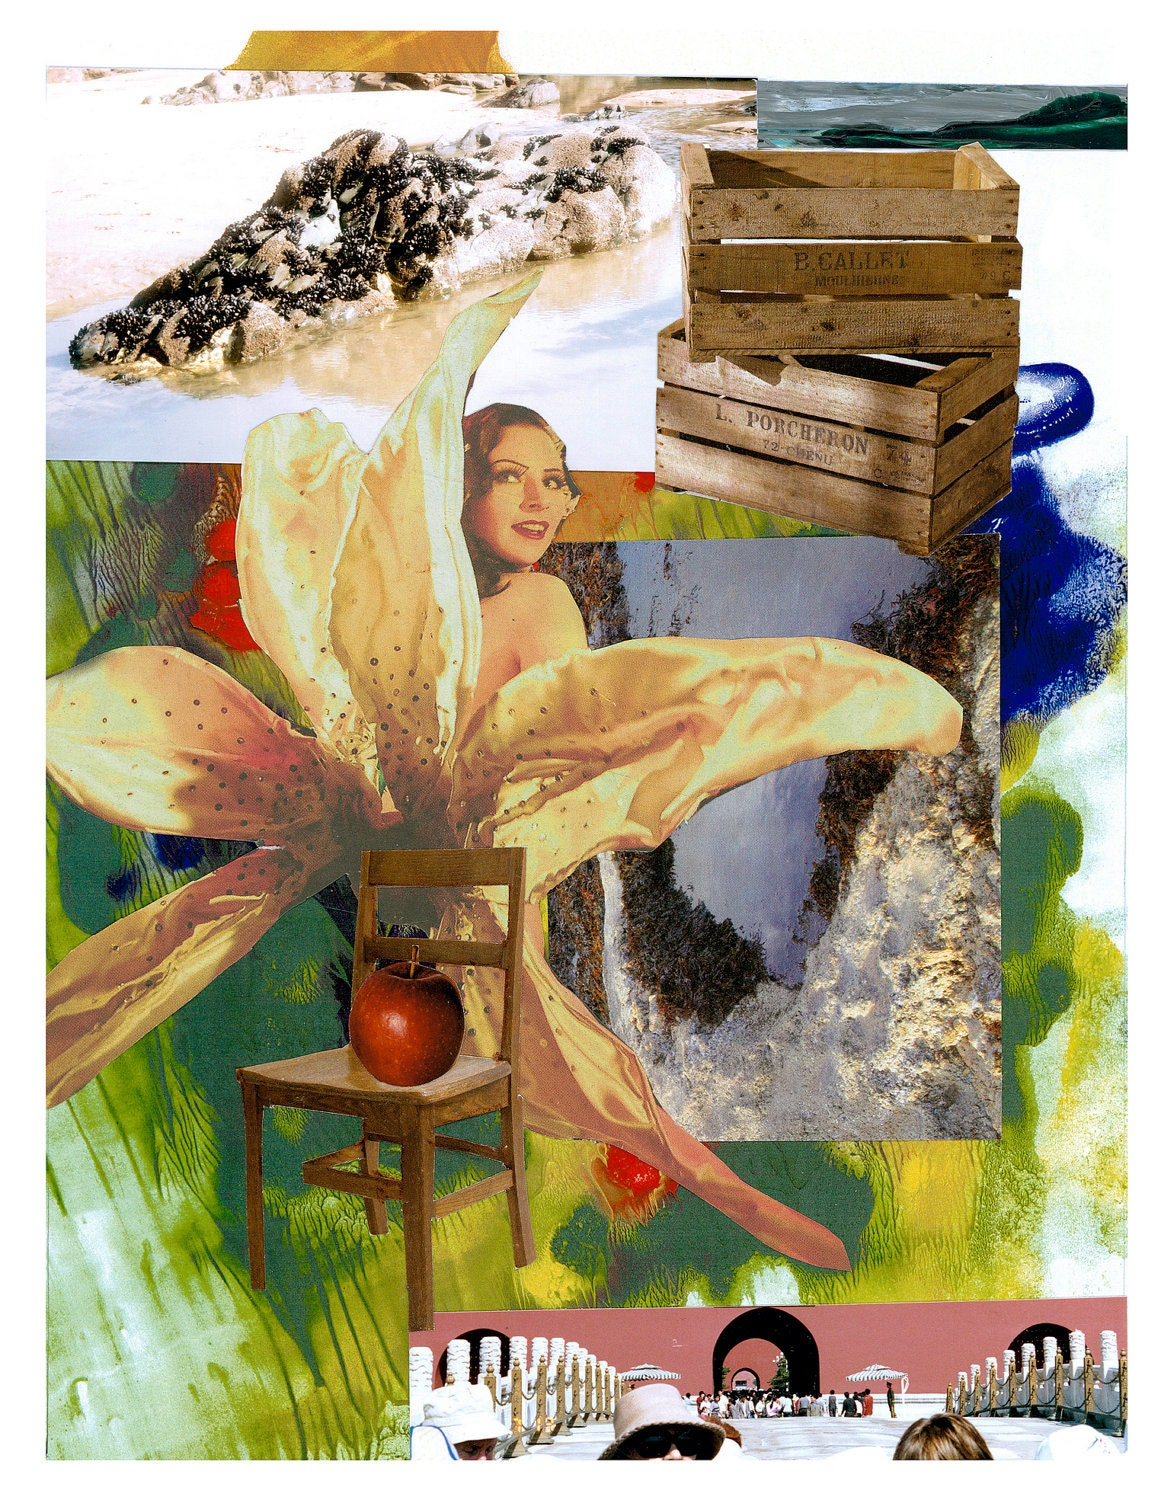 Golden Lady Lily loves Croc Rock. Collage - Limited edition print one of only 25. Free shipping - artsdesireable